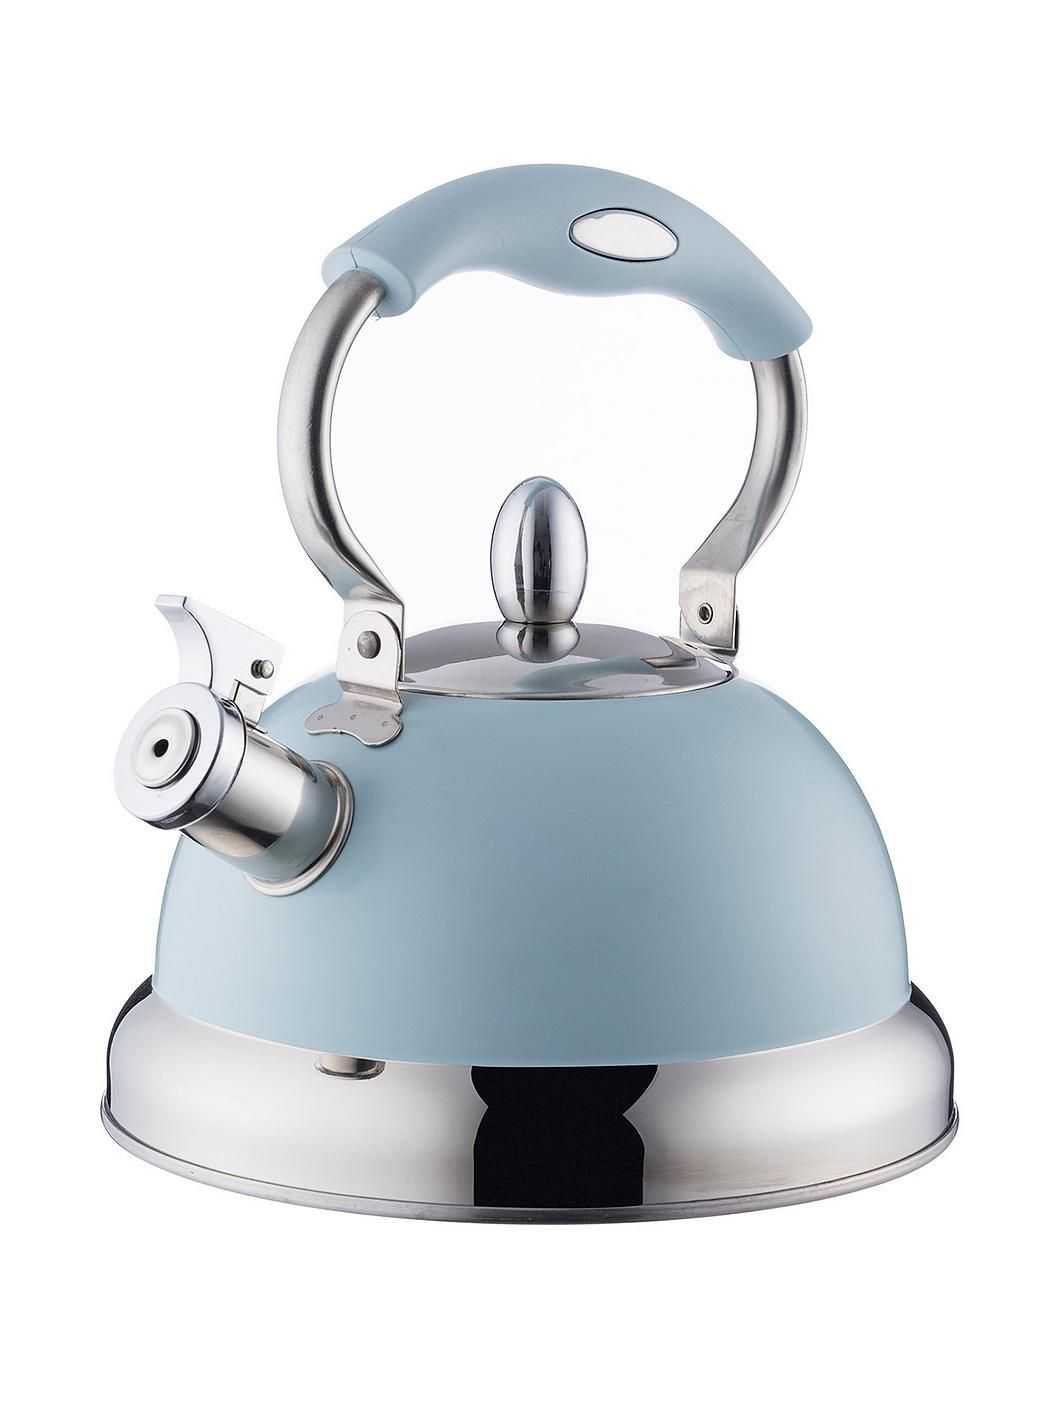 Retro Style 2.5L Whistling Kettle Stainless Steel Available In 4 Colours Blue